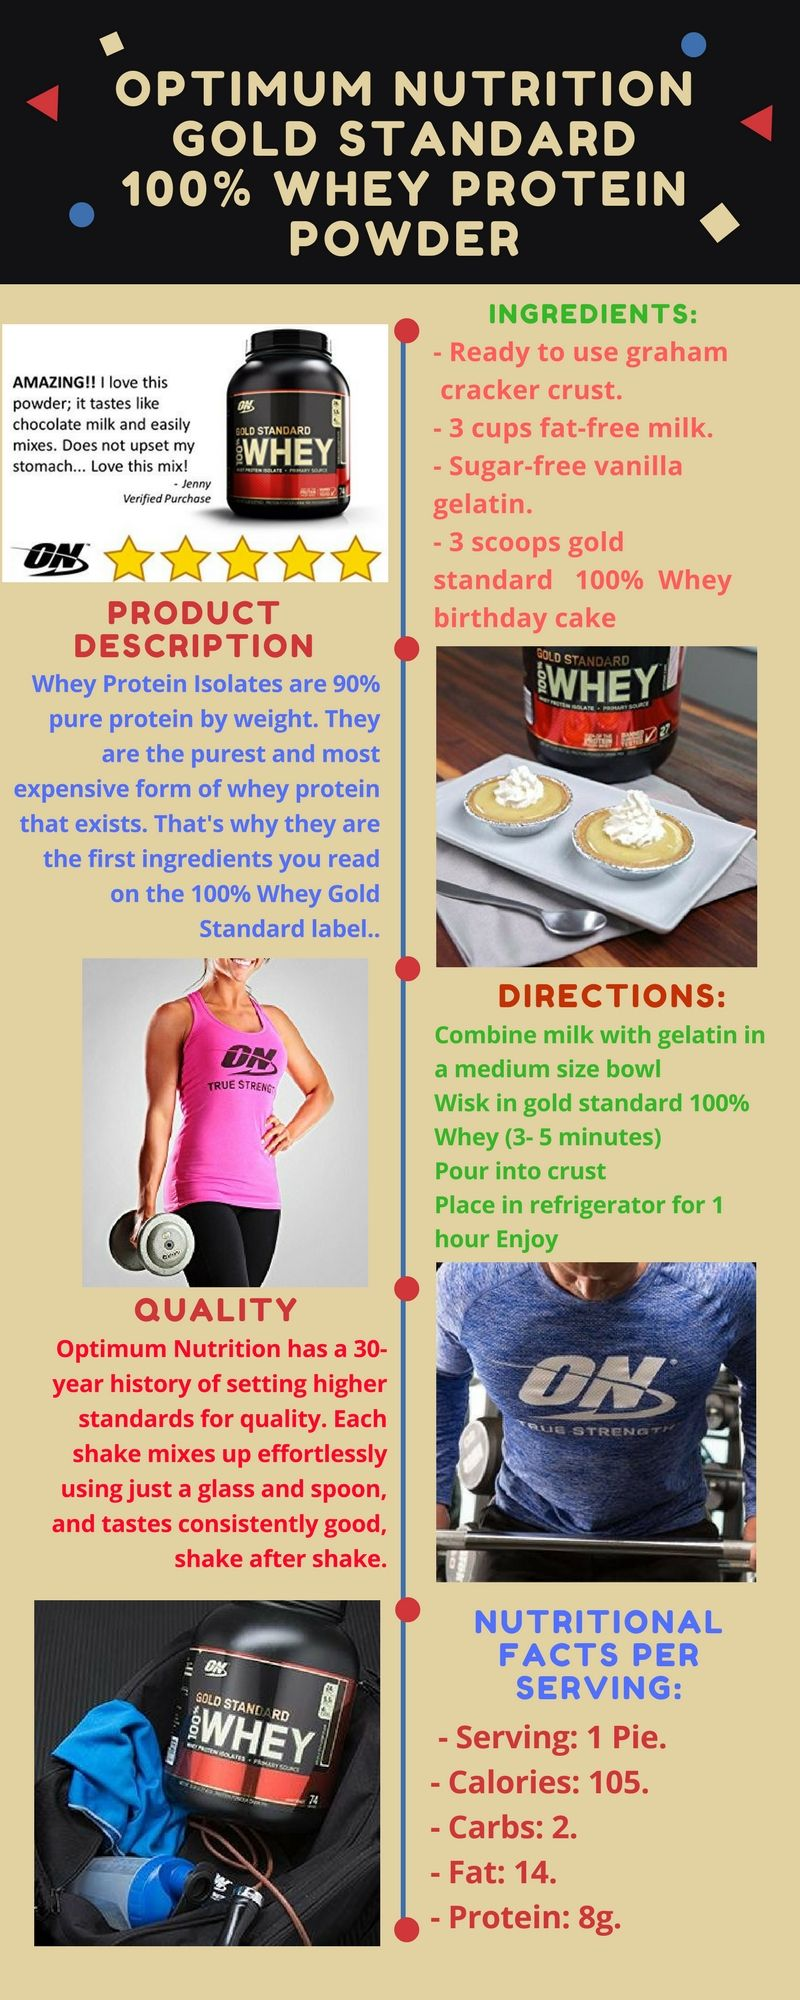 Gold Standard Whey Protein Side Effects Make Birthday Cake Pudding Pies Using Optimum Nutrition 100 PowderOptimum